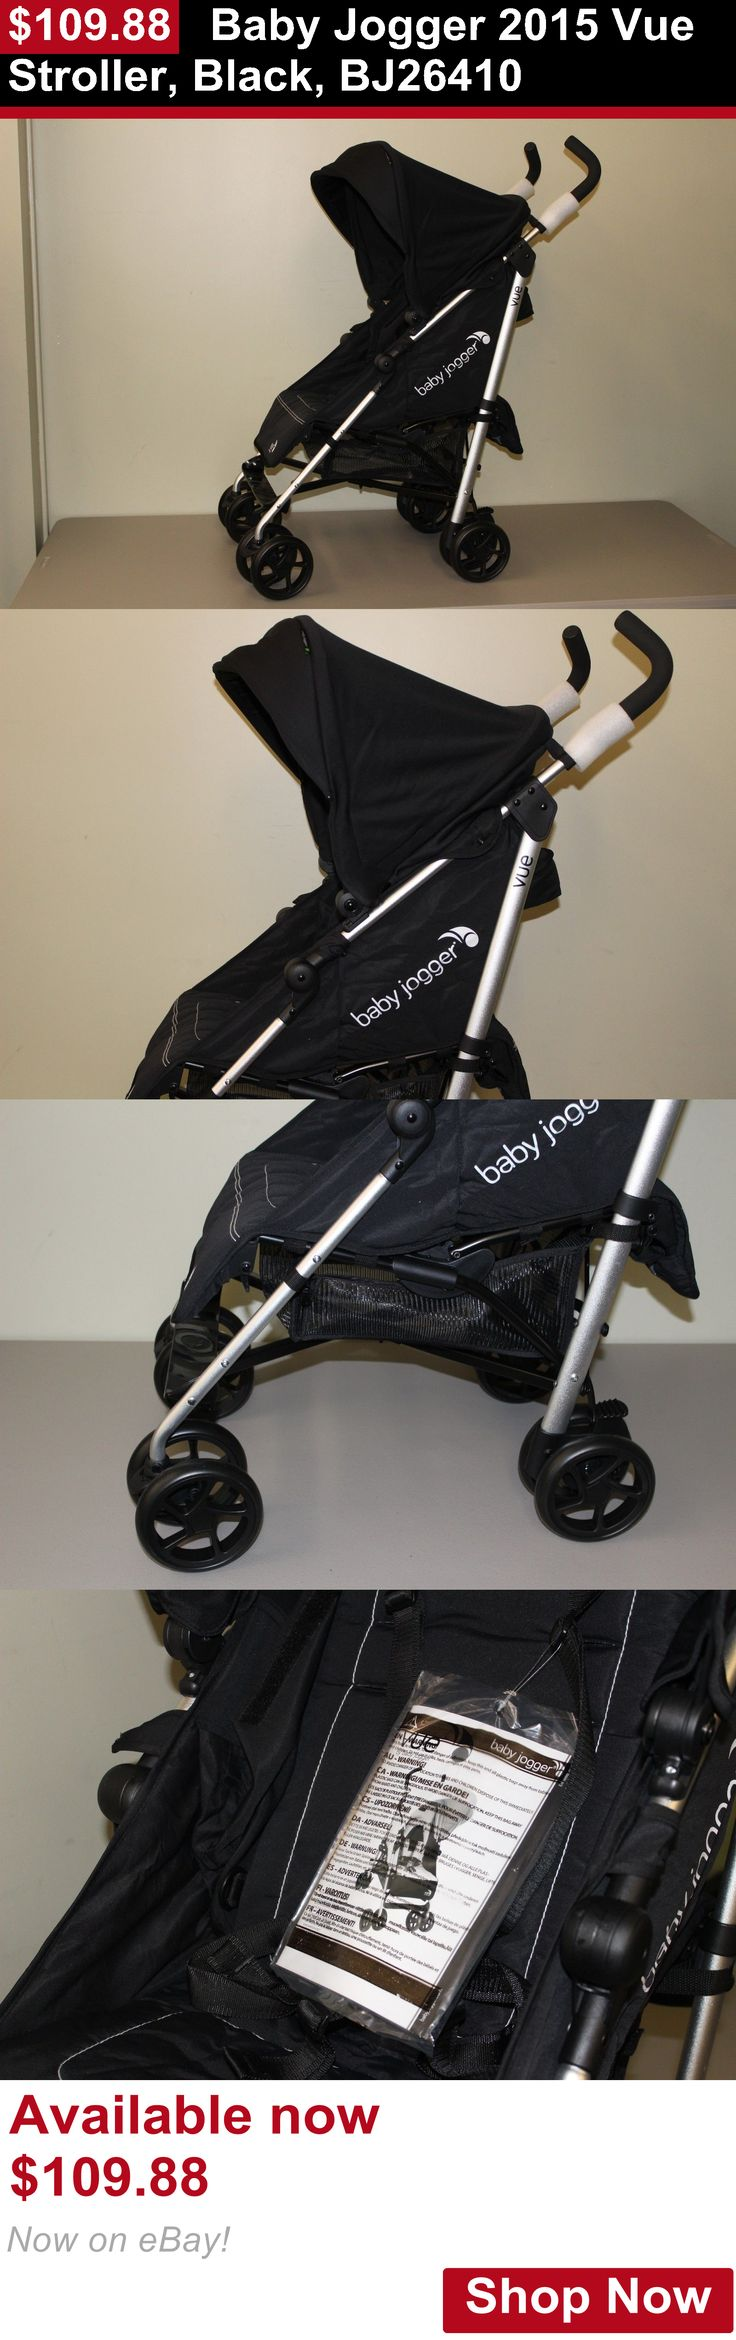 Strollers: Baby Jogger 2015 Vue Stroller, Black, Bj26410 BUY IT NOW ONLY: $109.88